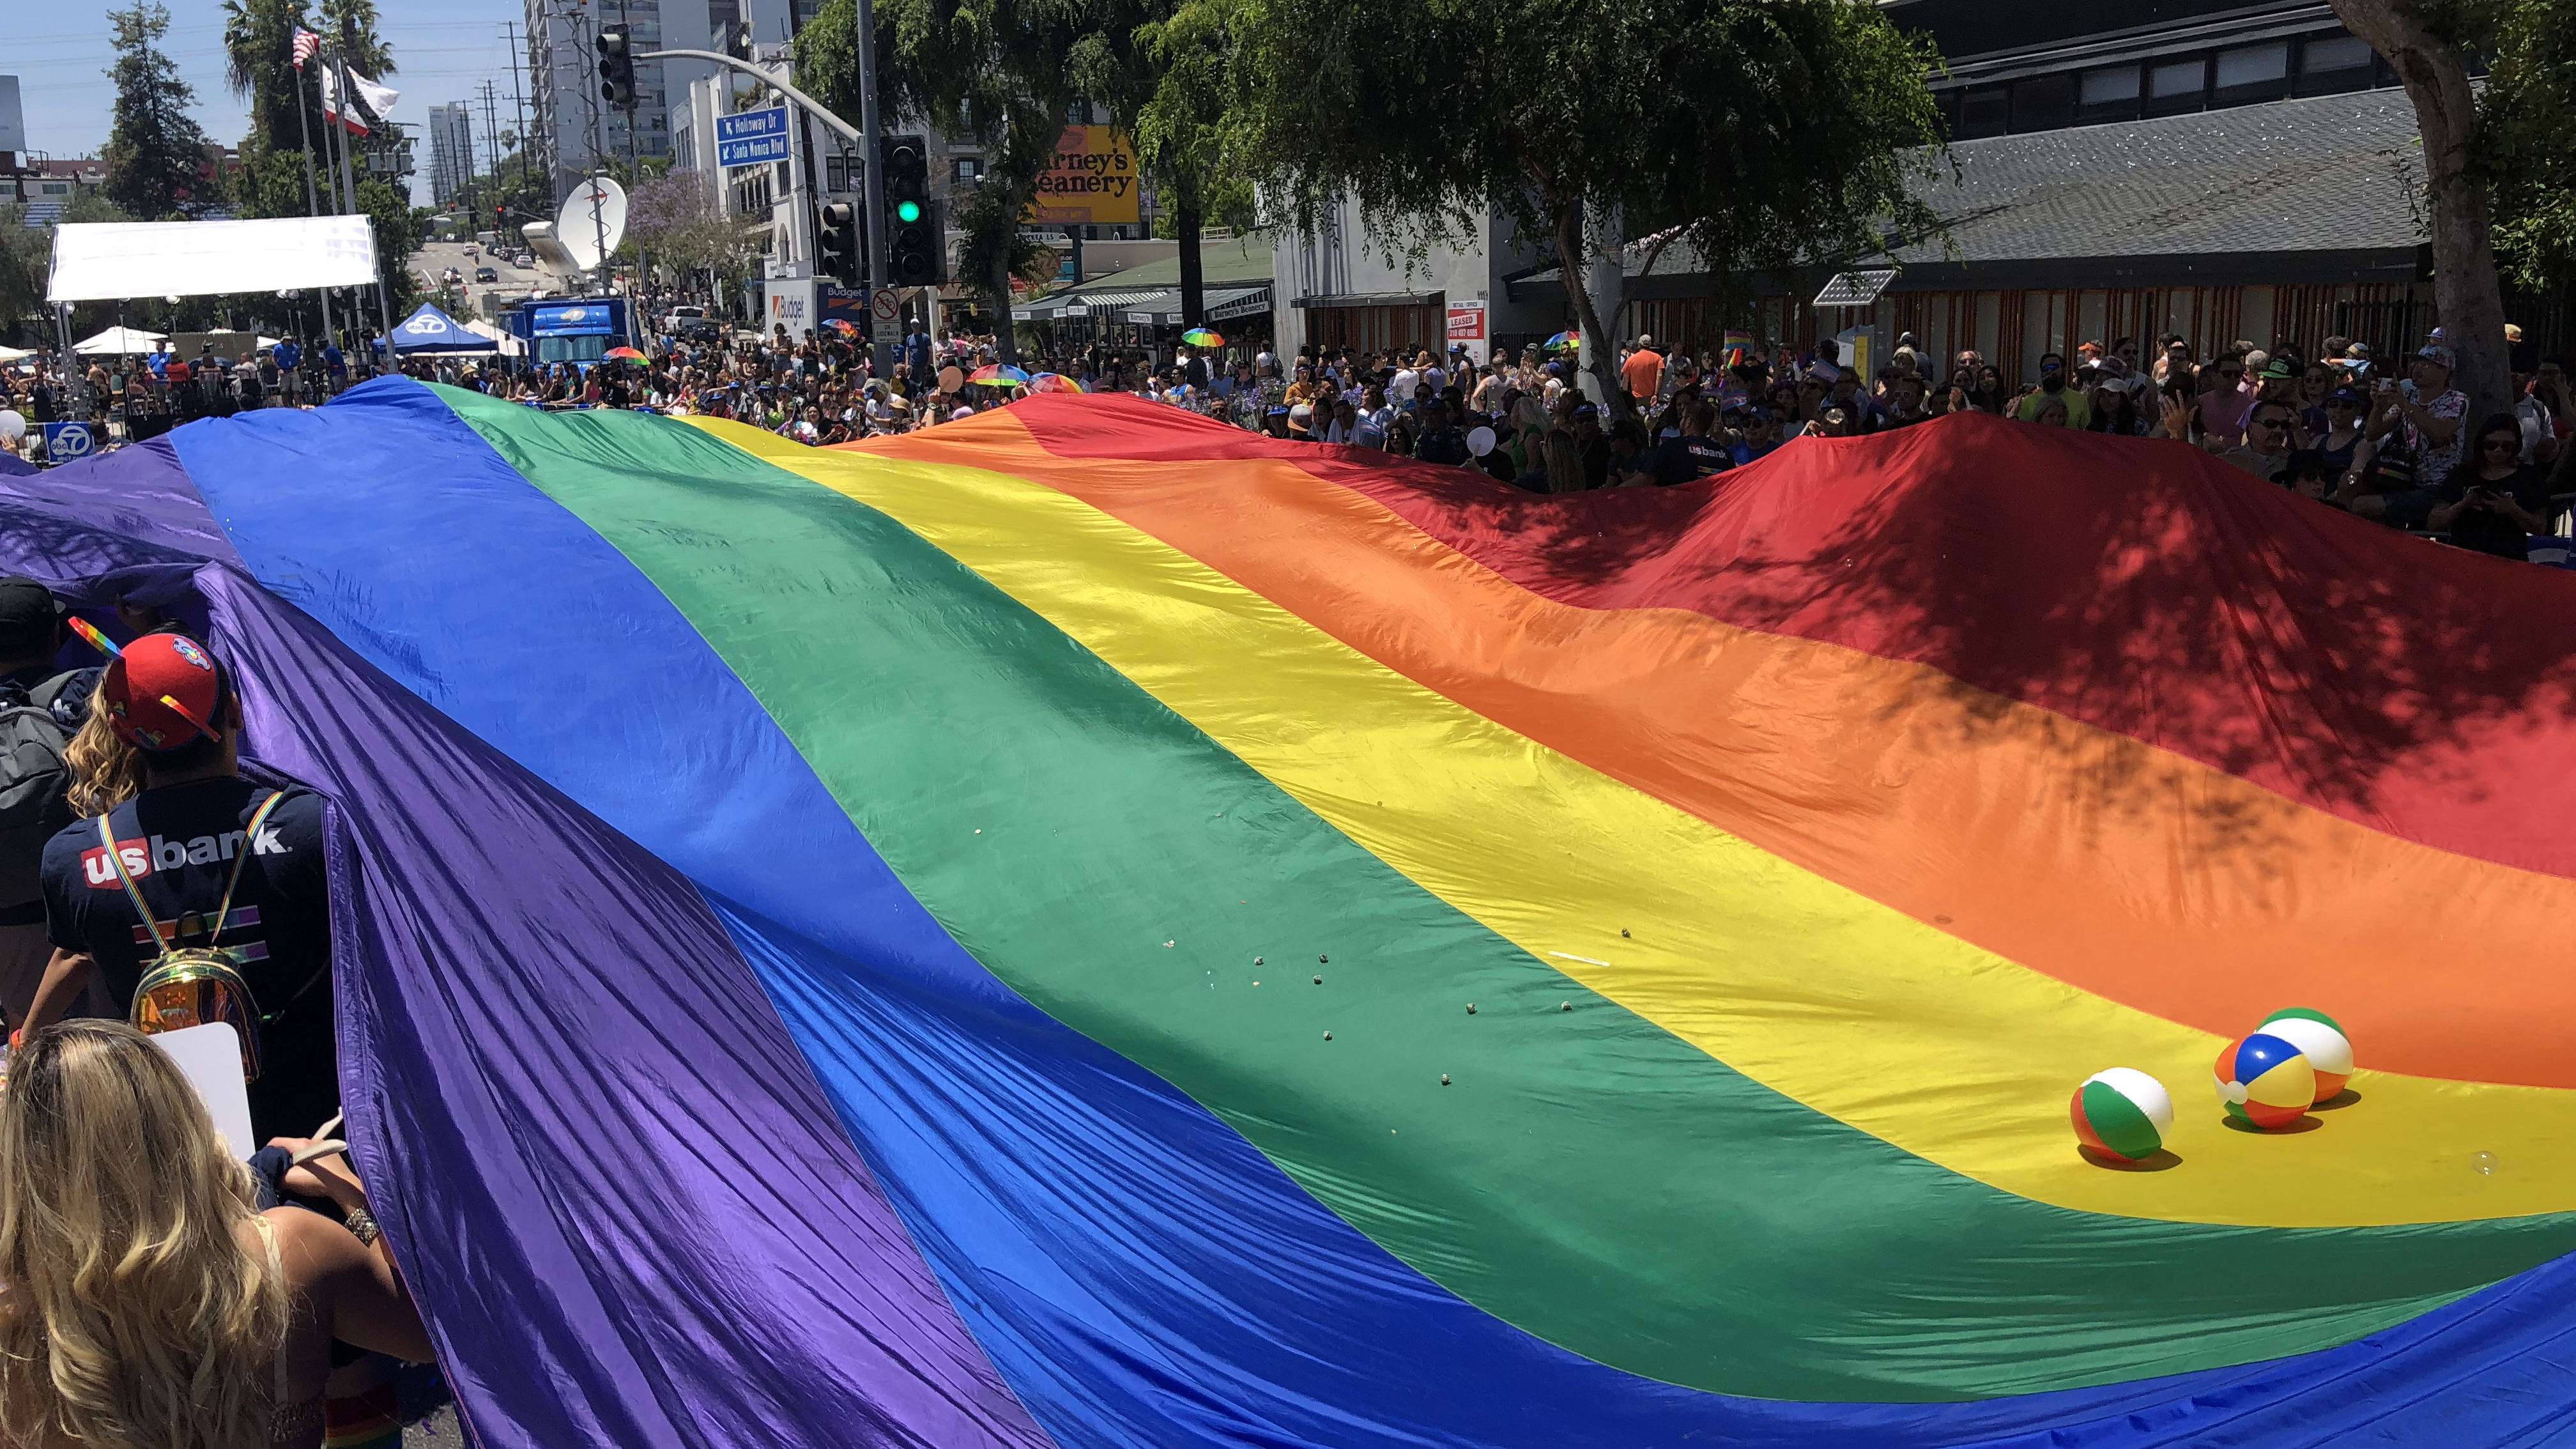 PHOTOS: Highlights from the 49th annual LA Pride Parade in West